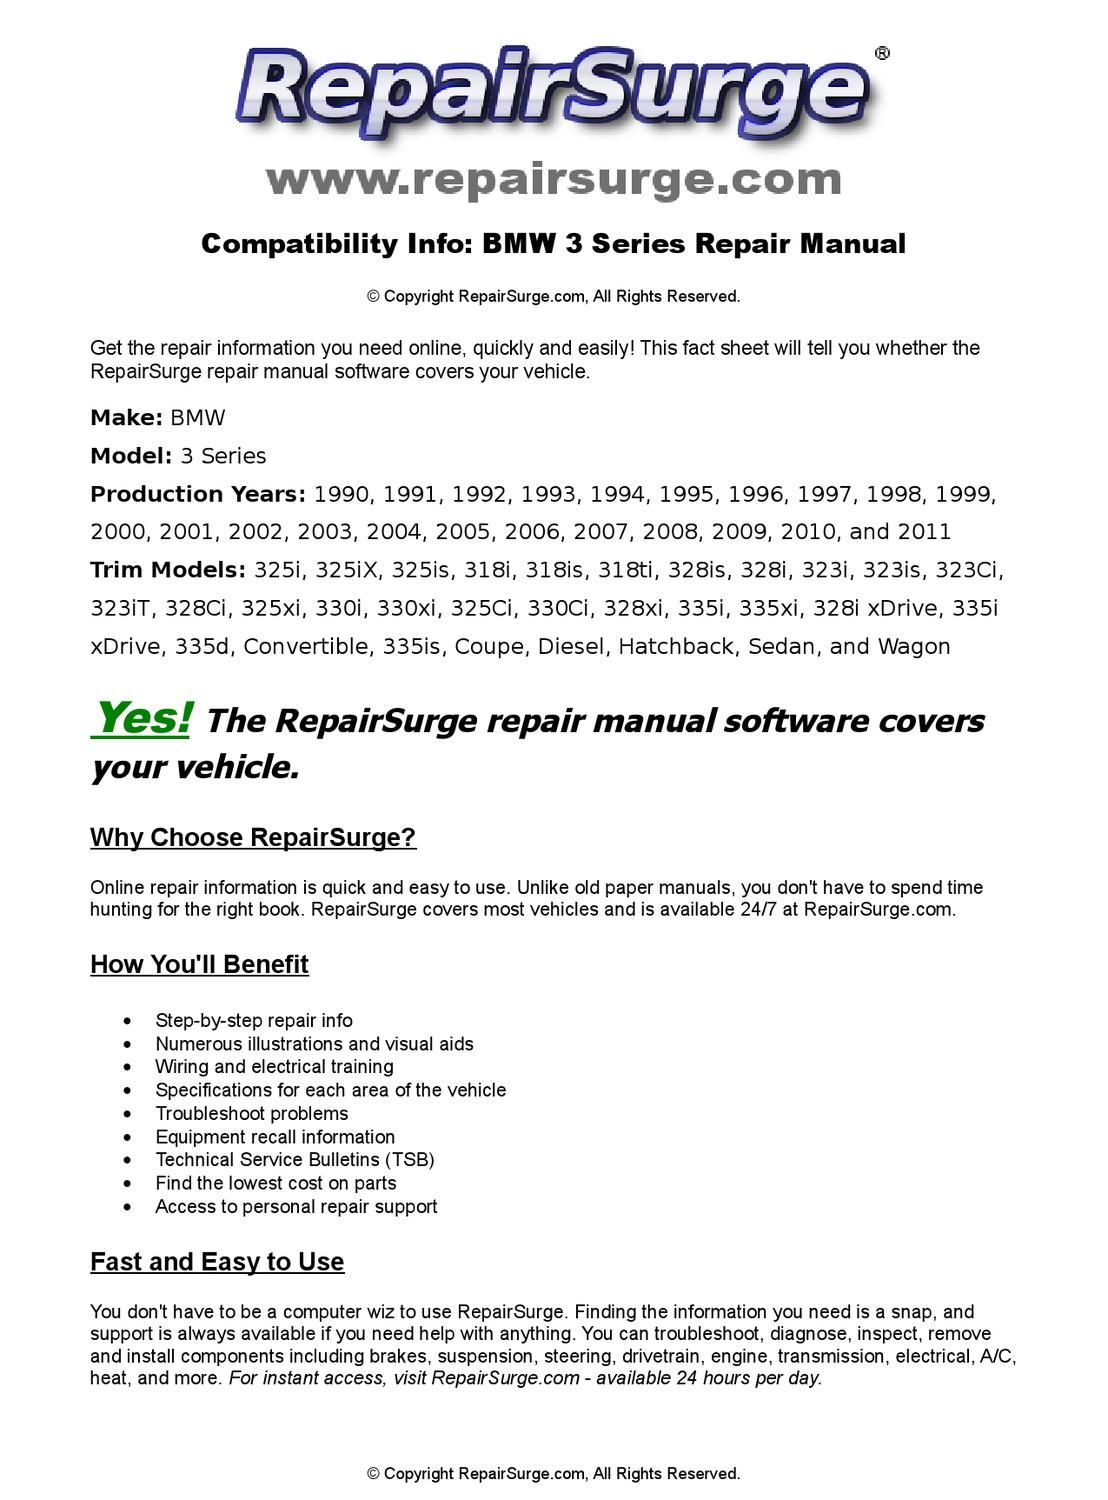 BMW 3 Series Online Repair Manual For 1990, 1991, 1992, 1993, 1994, 1995,  1996, 1997, 1998, 1999, 20 by RepairSurge - issuu